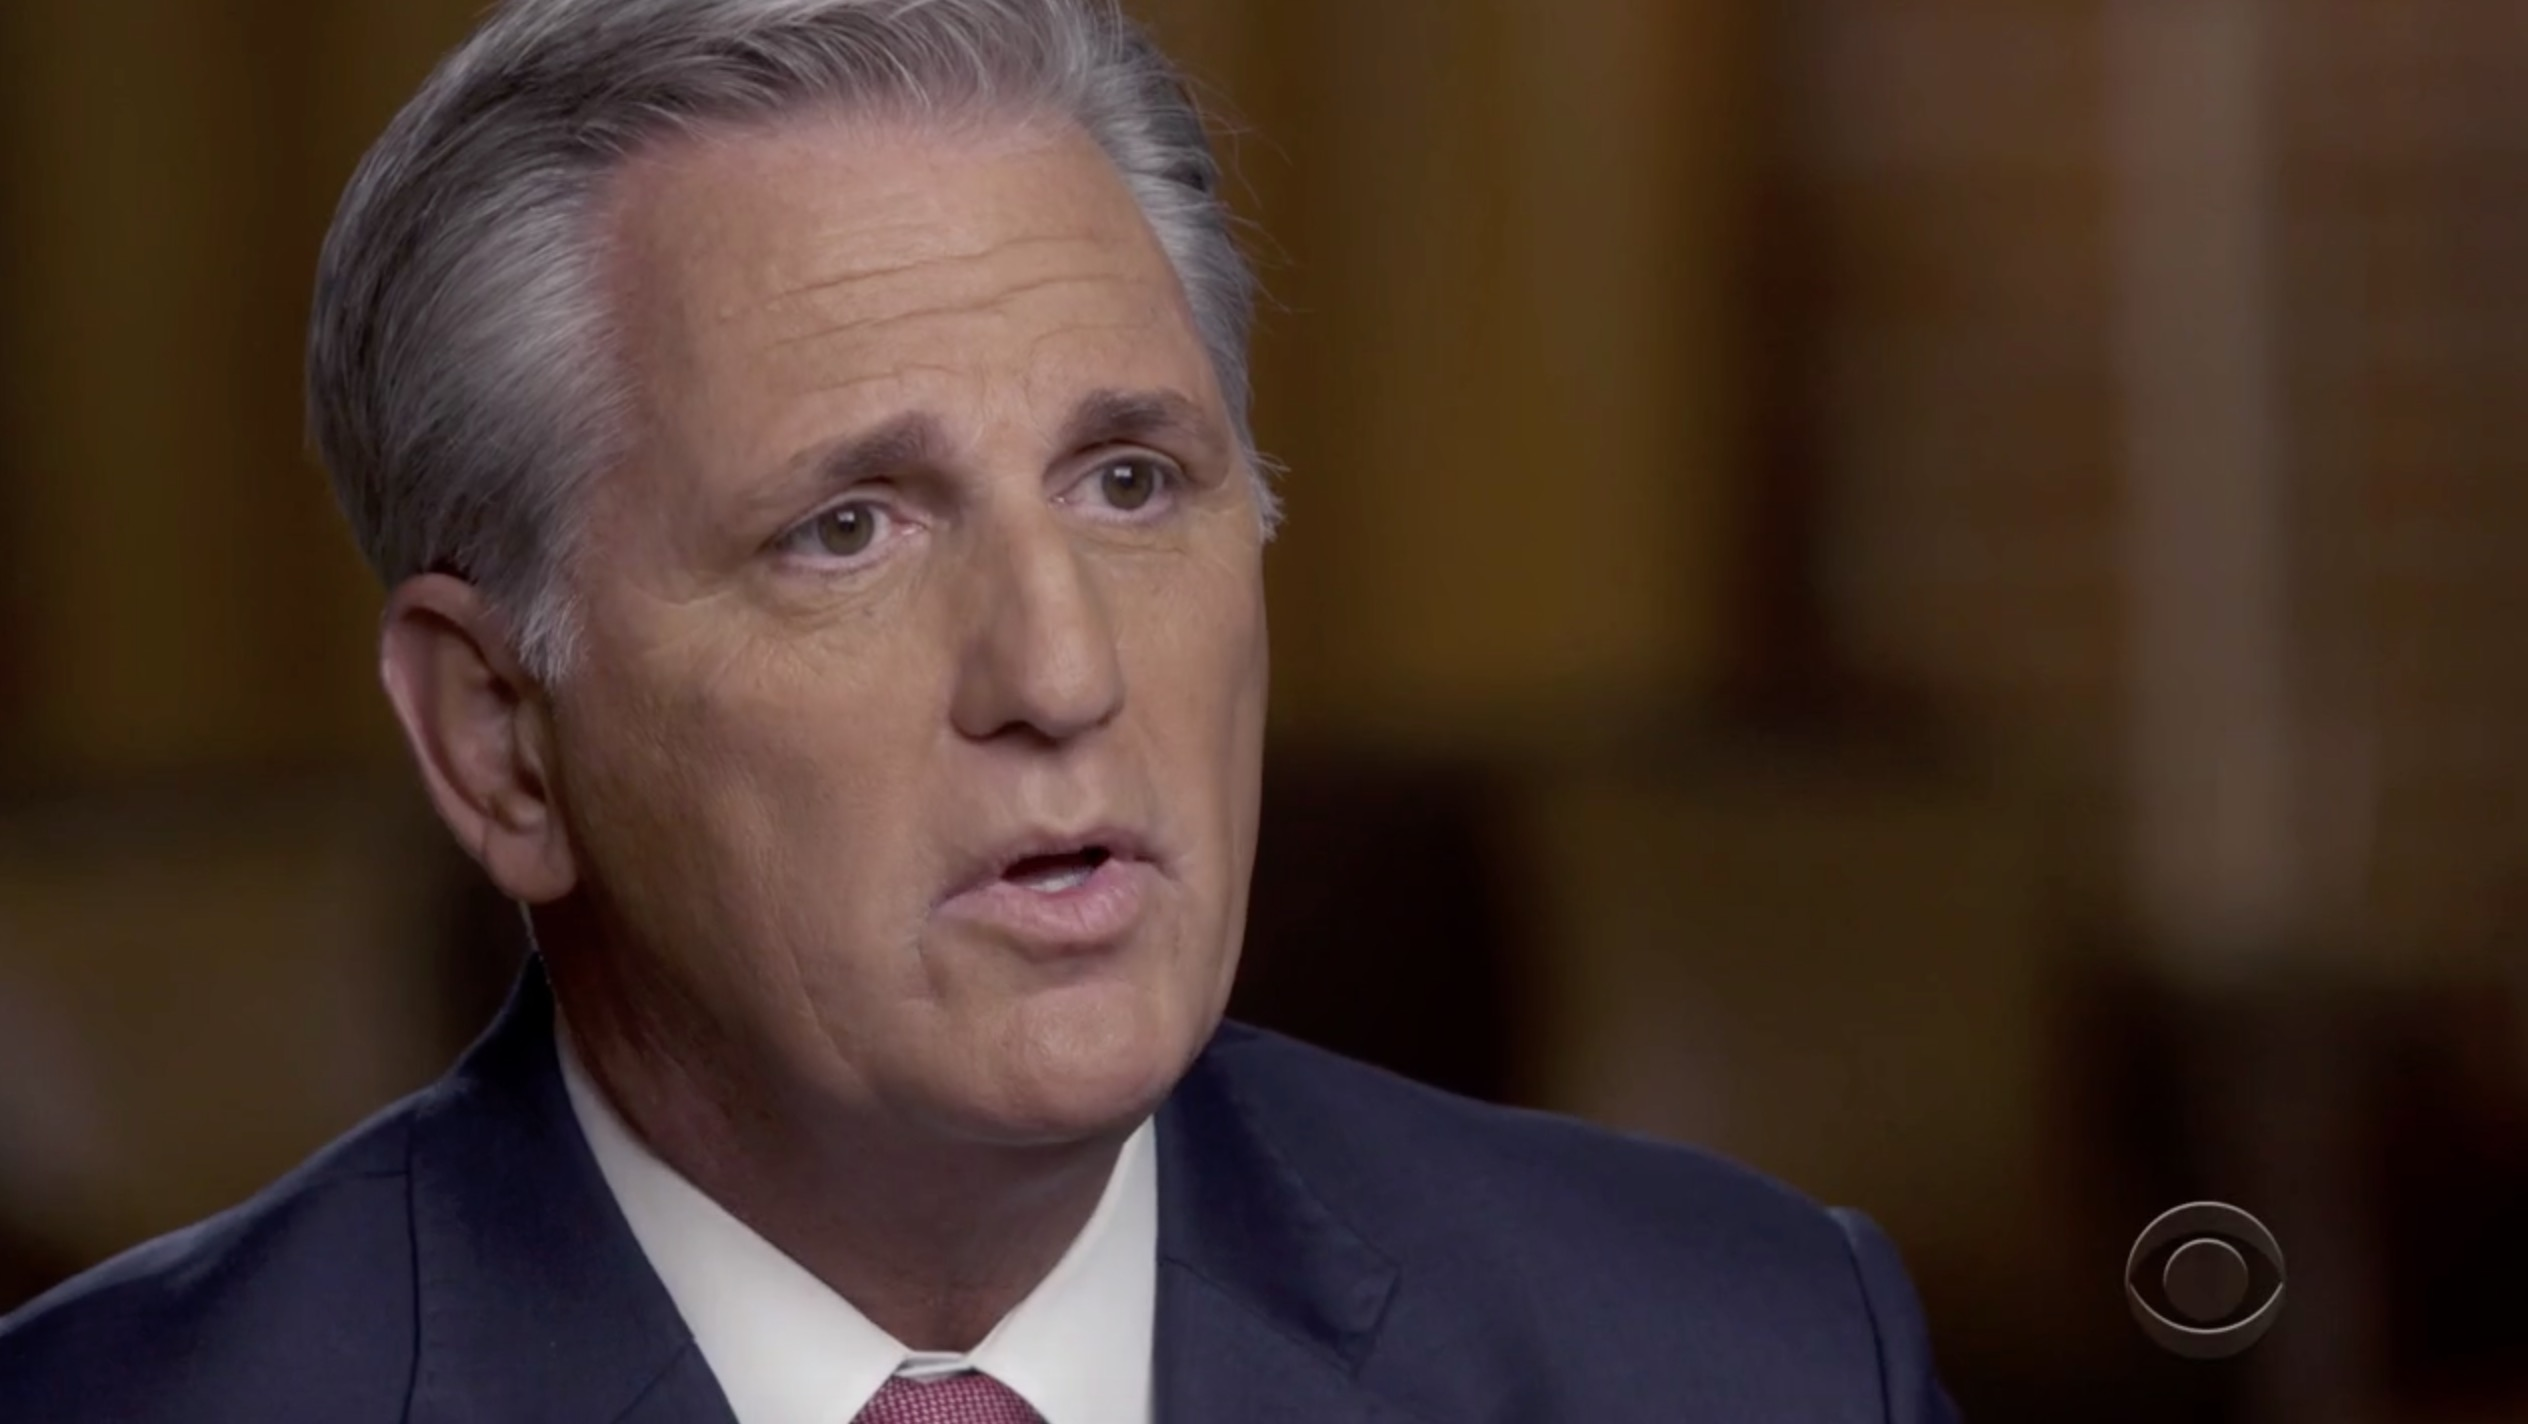 Kevin McCarthy Accuses Scott Pelley of Distorting Trump-Zelensky Call in 60 Minutes Interview (He Didn't)